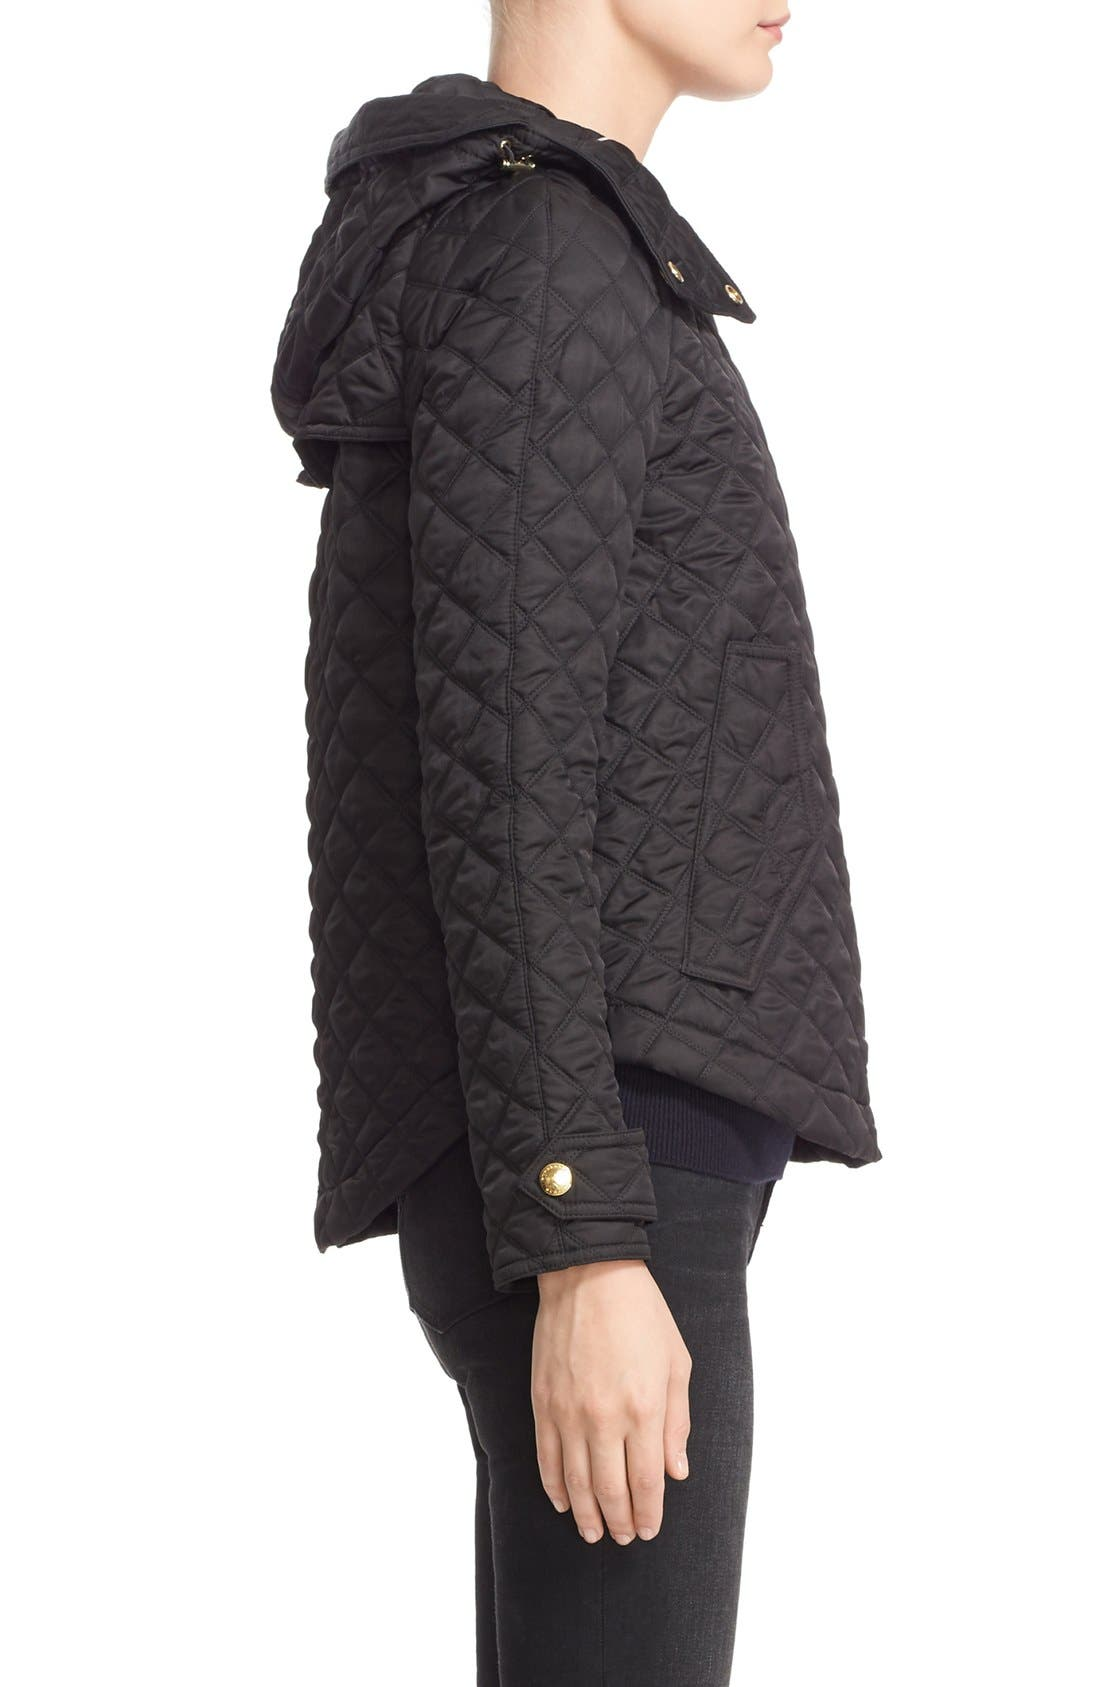 BURBERRY BRIT, 'Leightonbury' Quilted Hooded Jacket, Alternate thumbnail 6, color, 001